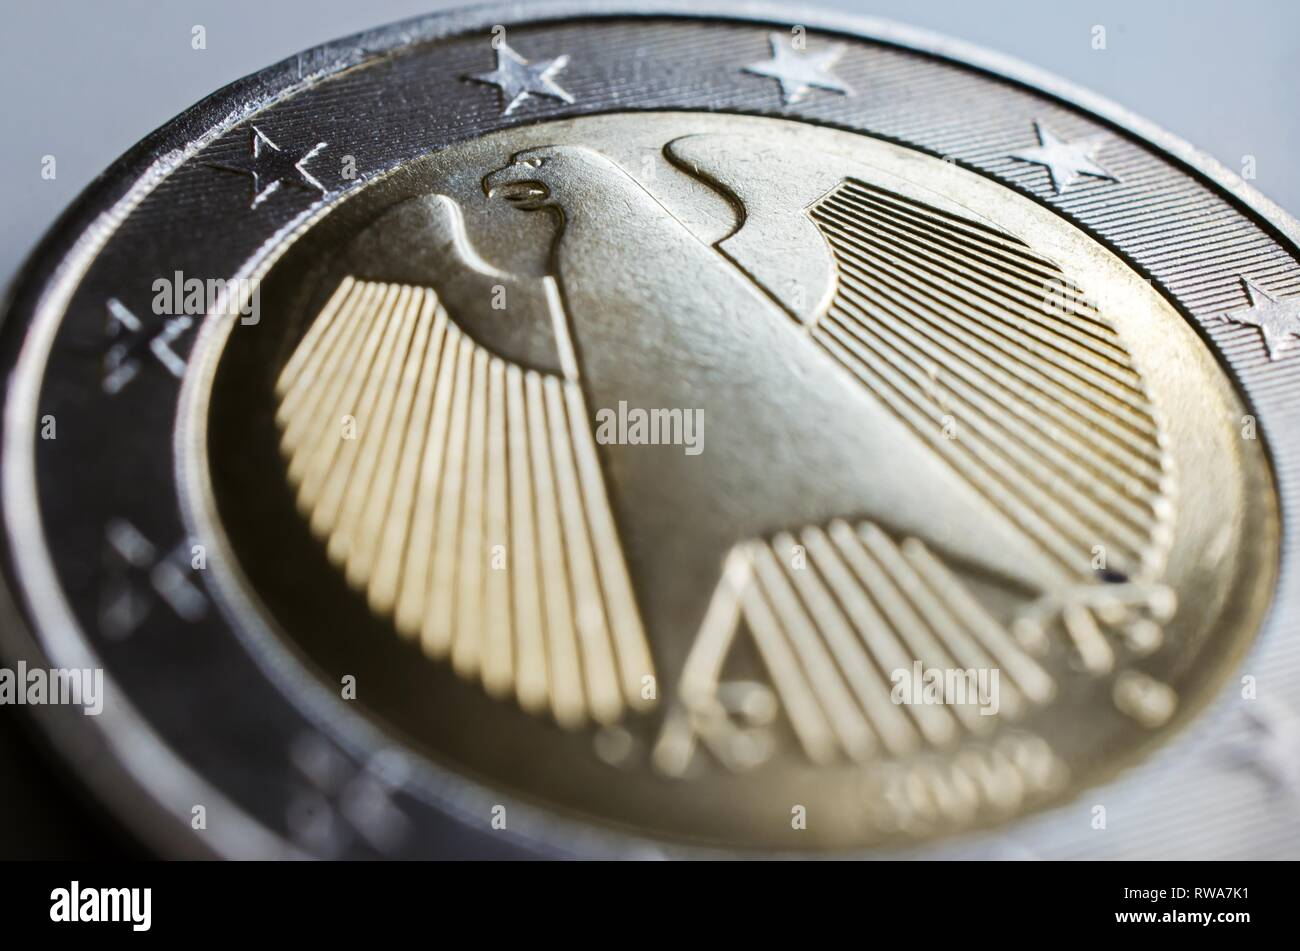 Backside of the German 2 euro coin with the federal eagle, Germany - Stock Image